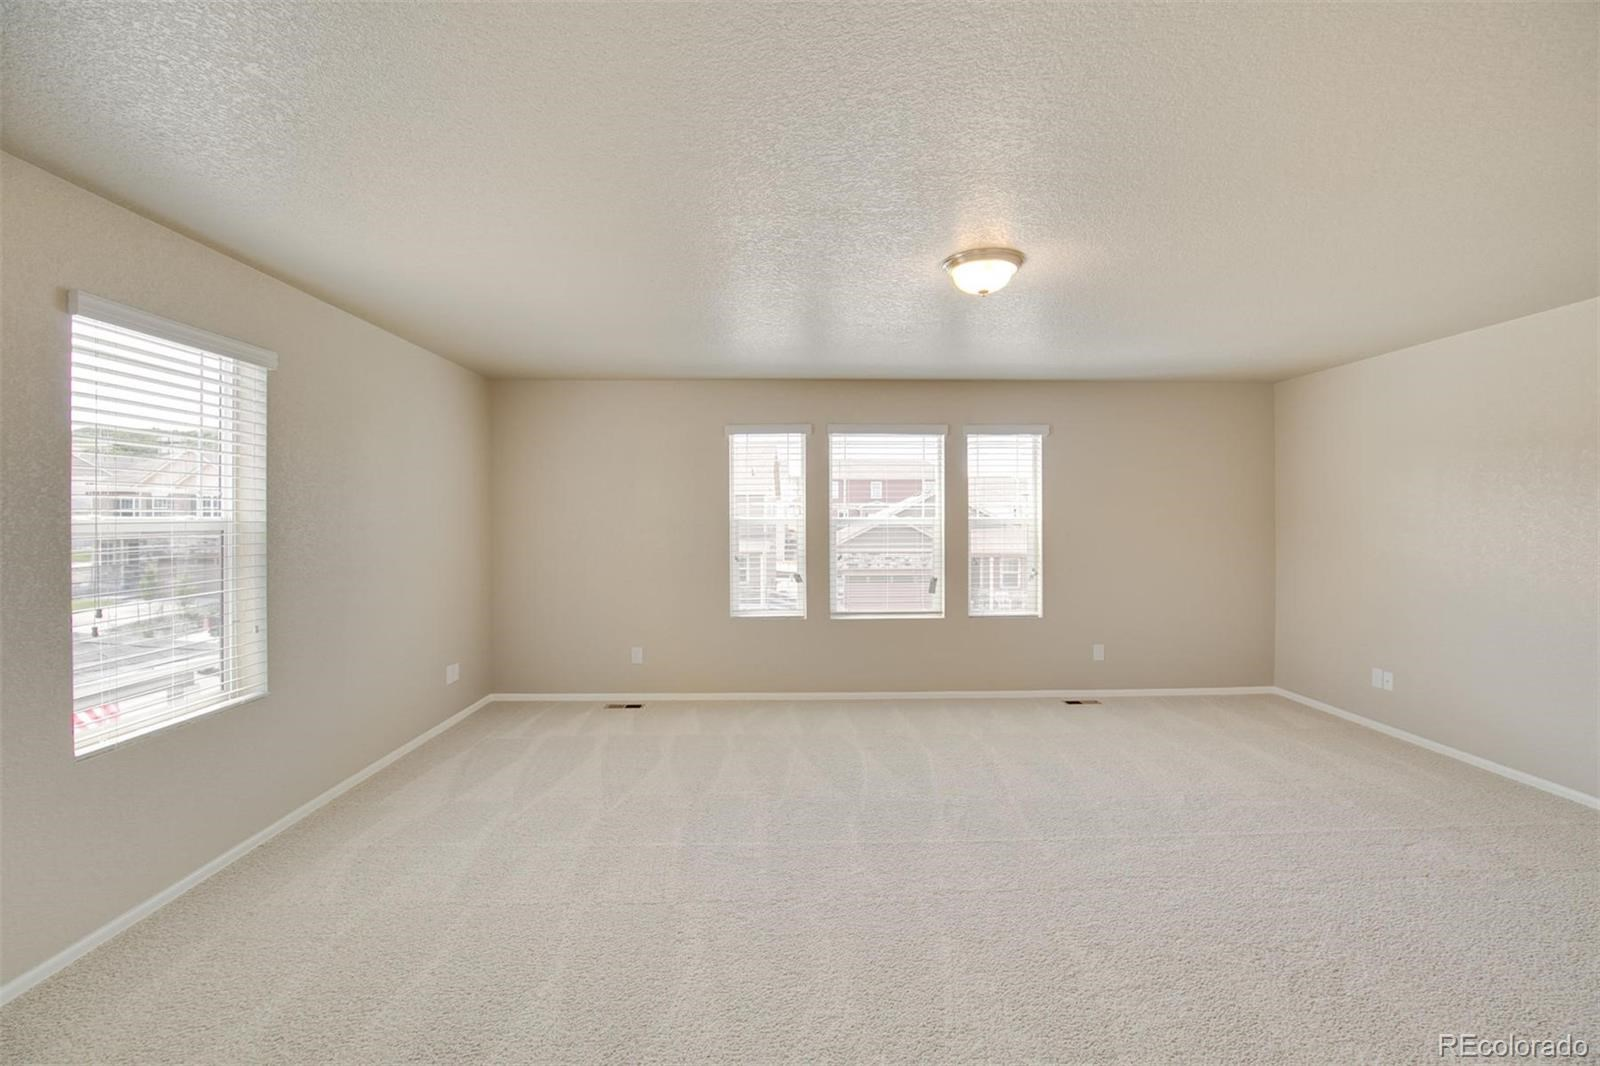 MLS# 4867430 - 15 - 915 Camberly Drive, Windsor, CO 80550